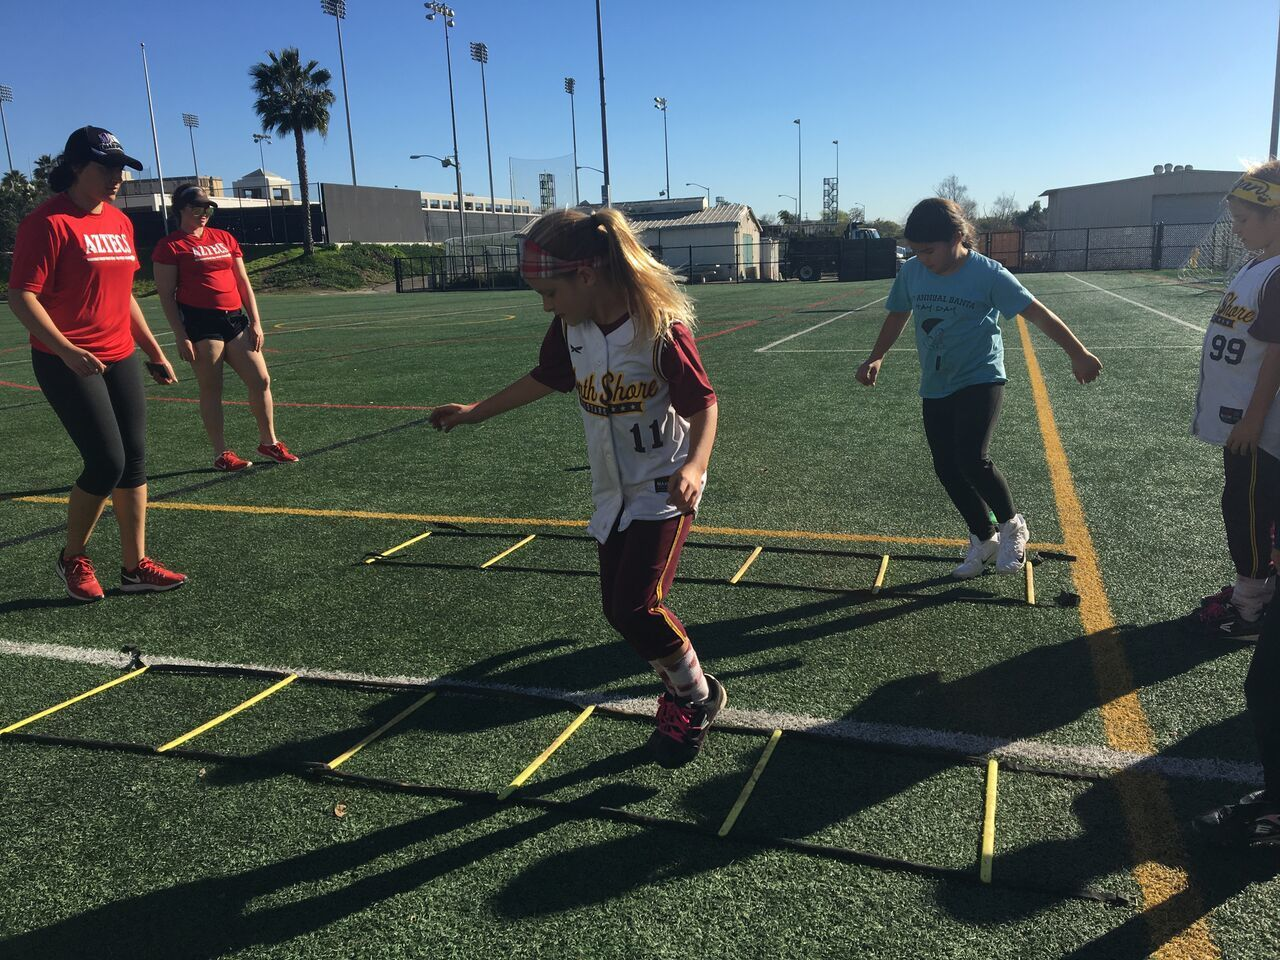 More than 50 girls participated in a variety of drills that were designed to develop and hone softball skill and technique.